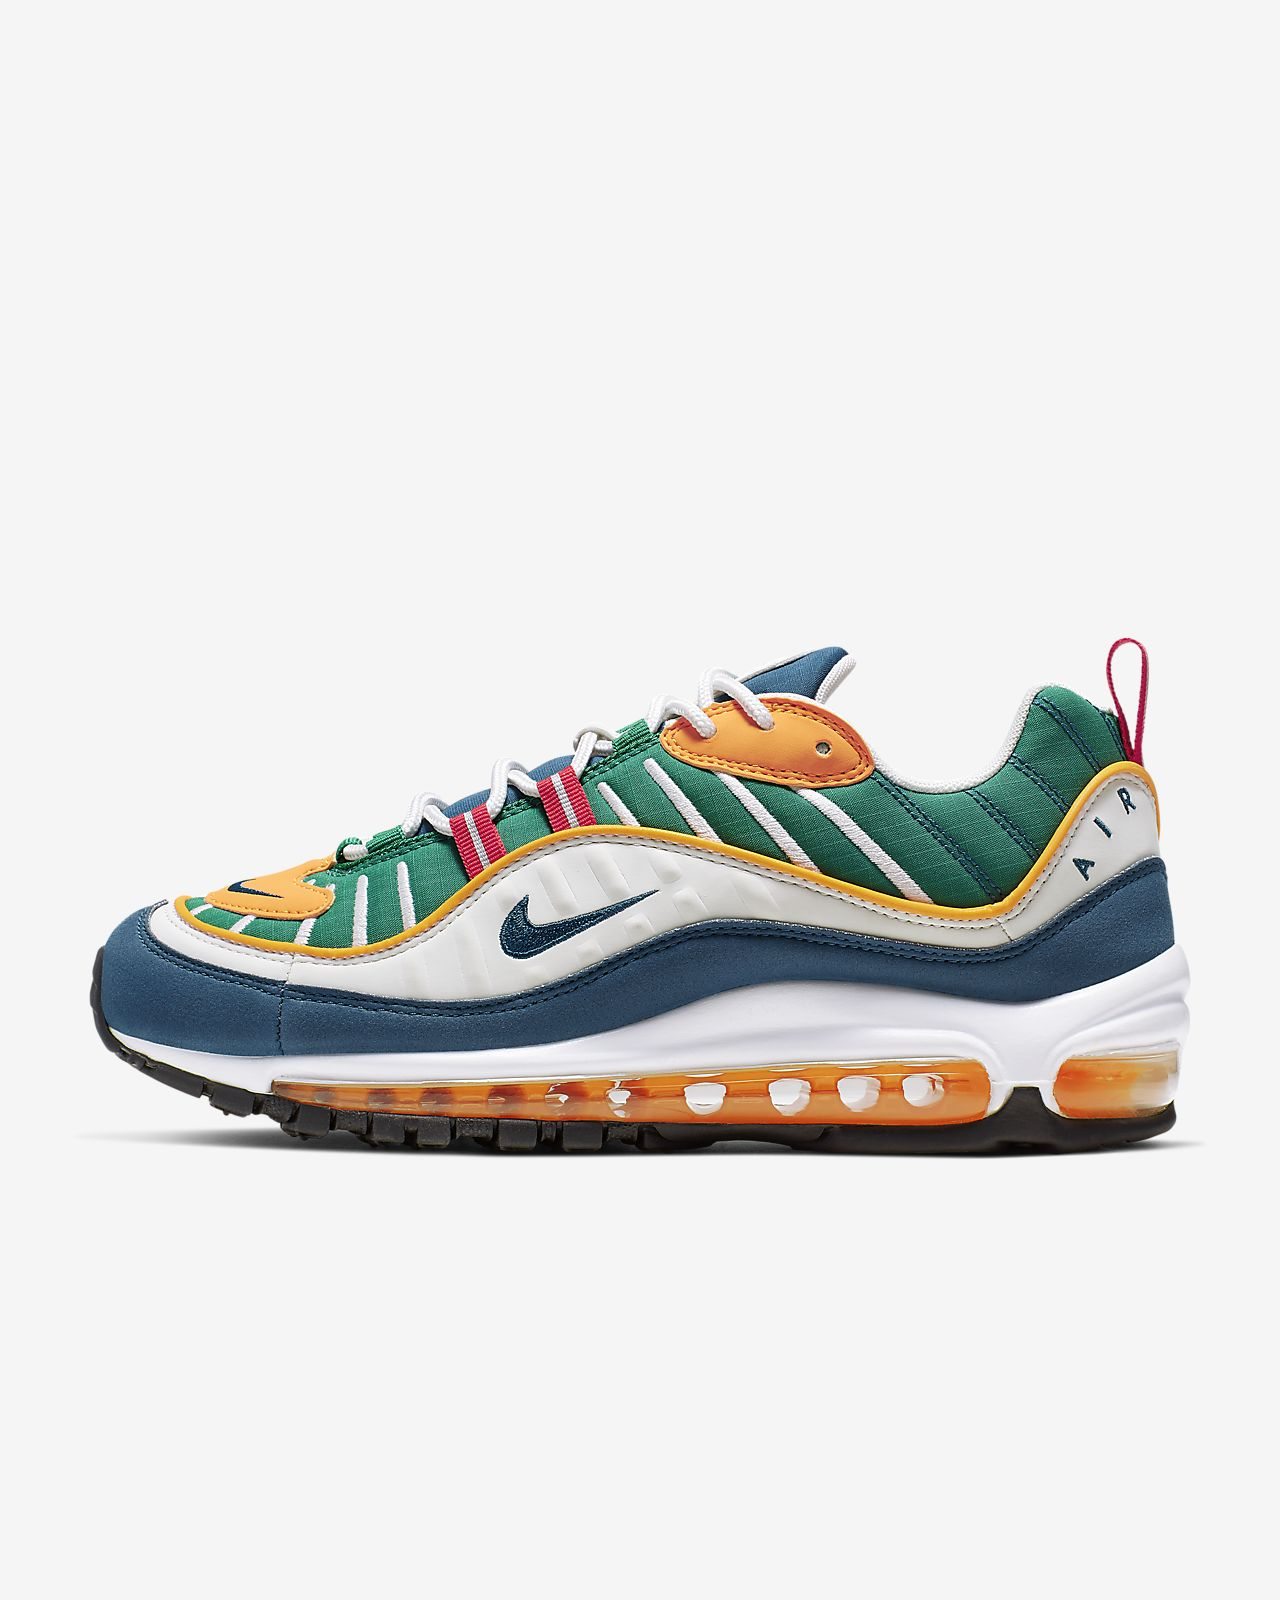 official photos 9885f 4fd4b Nike Air Max 98 Women's Shoe